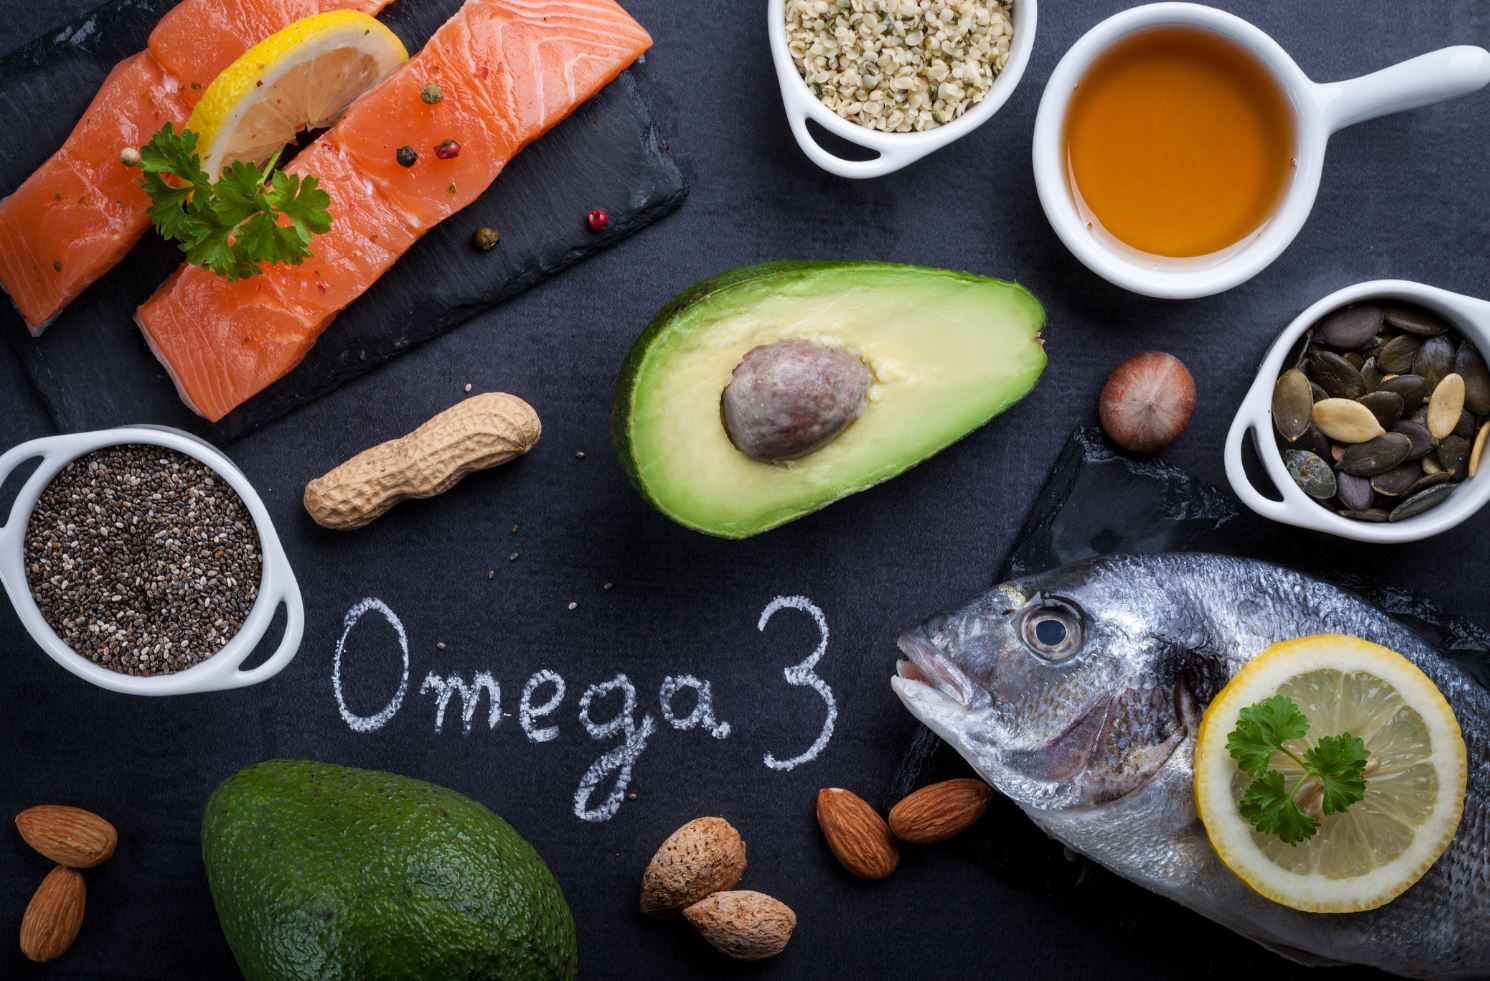 Omega 3 Ingredients